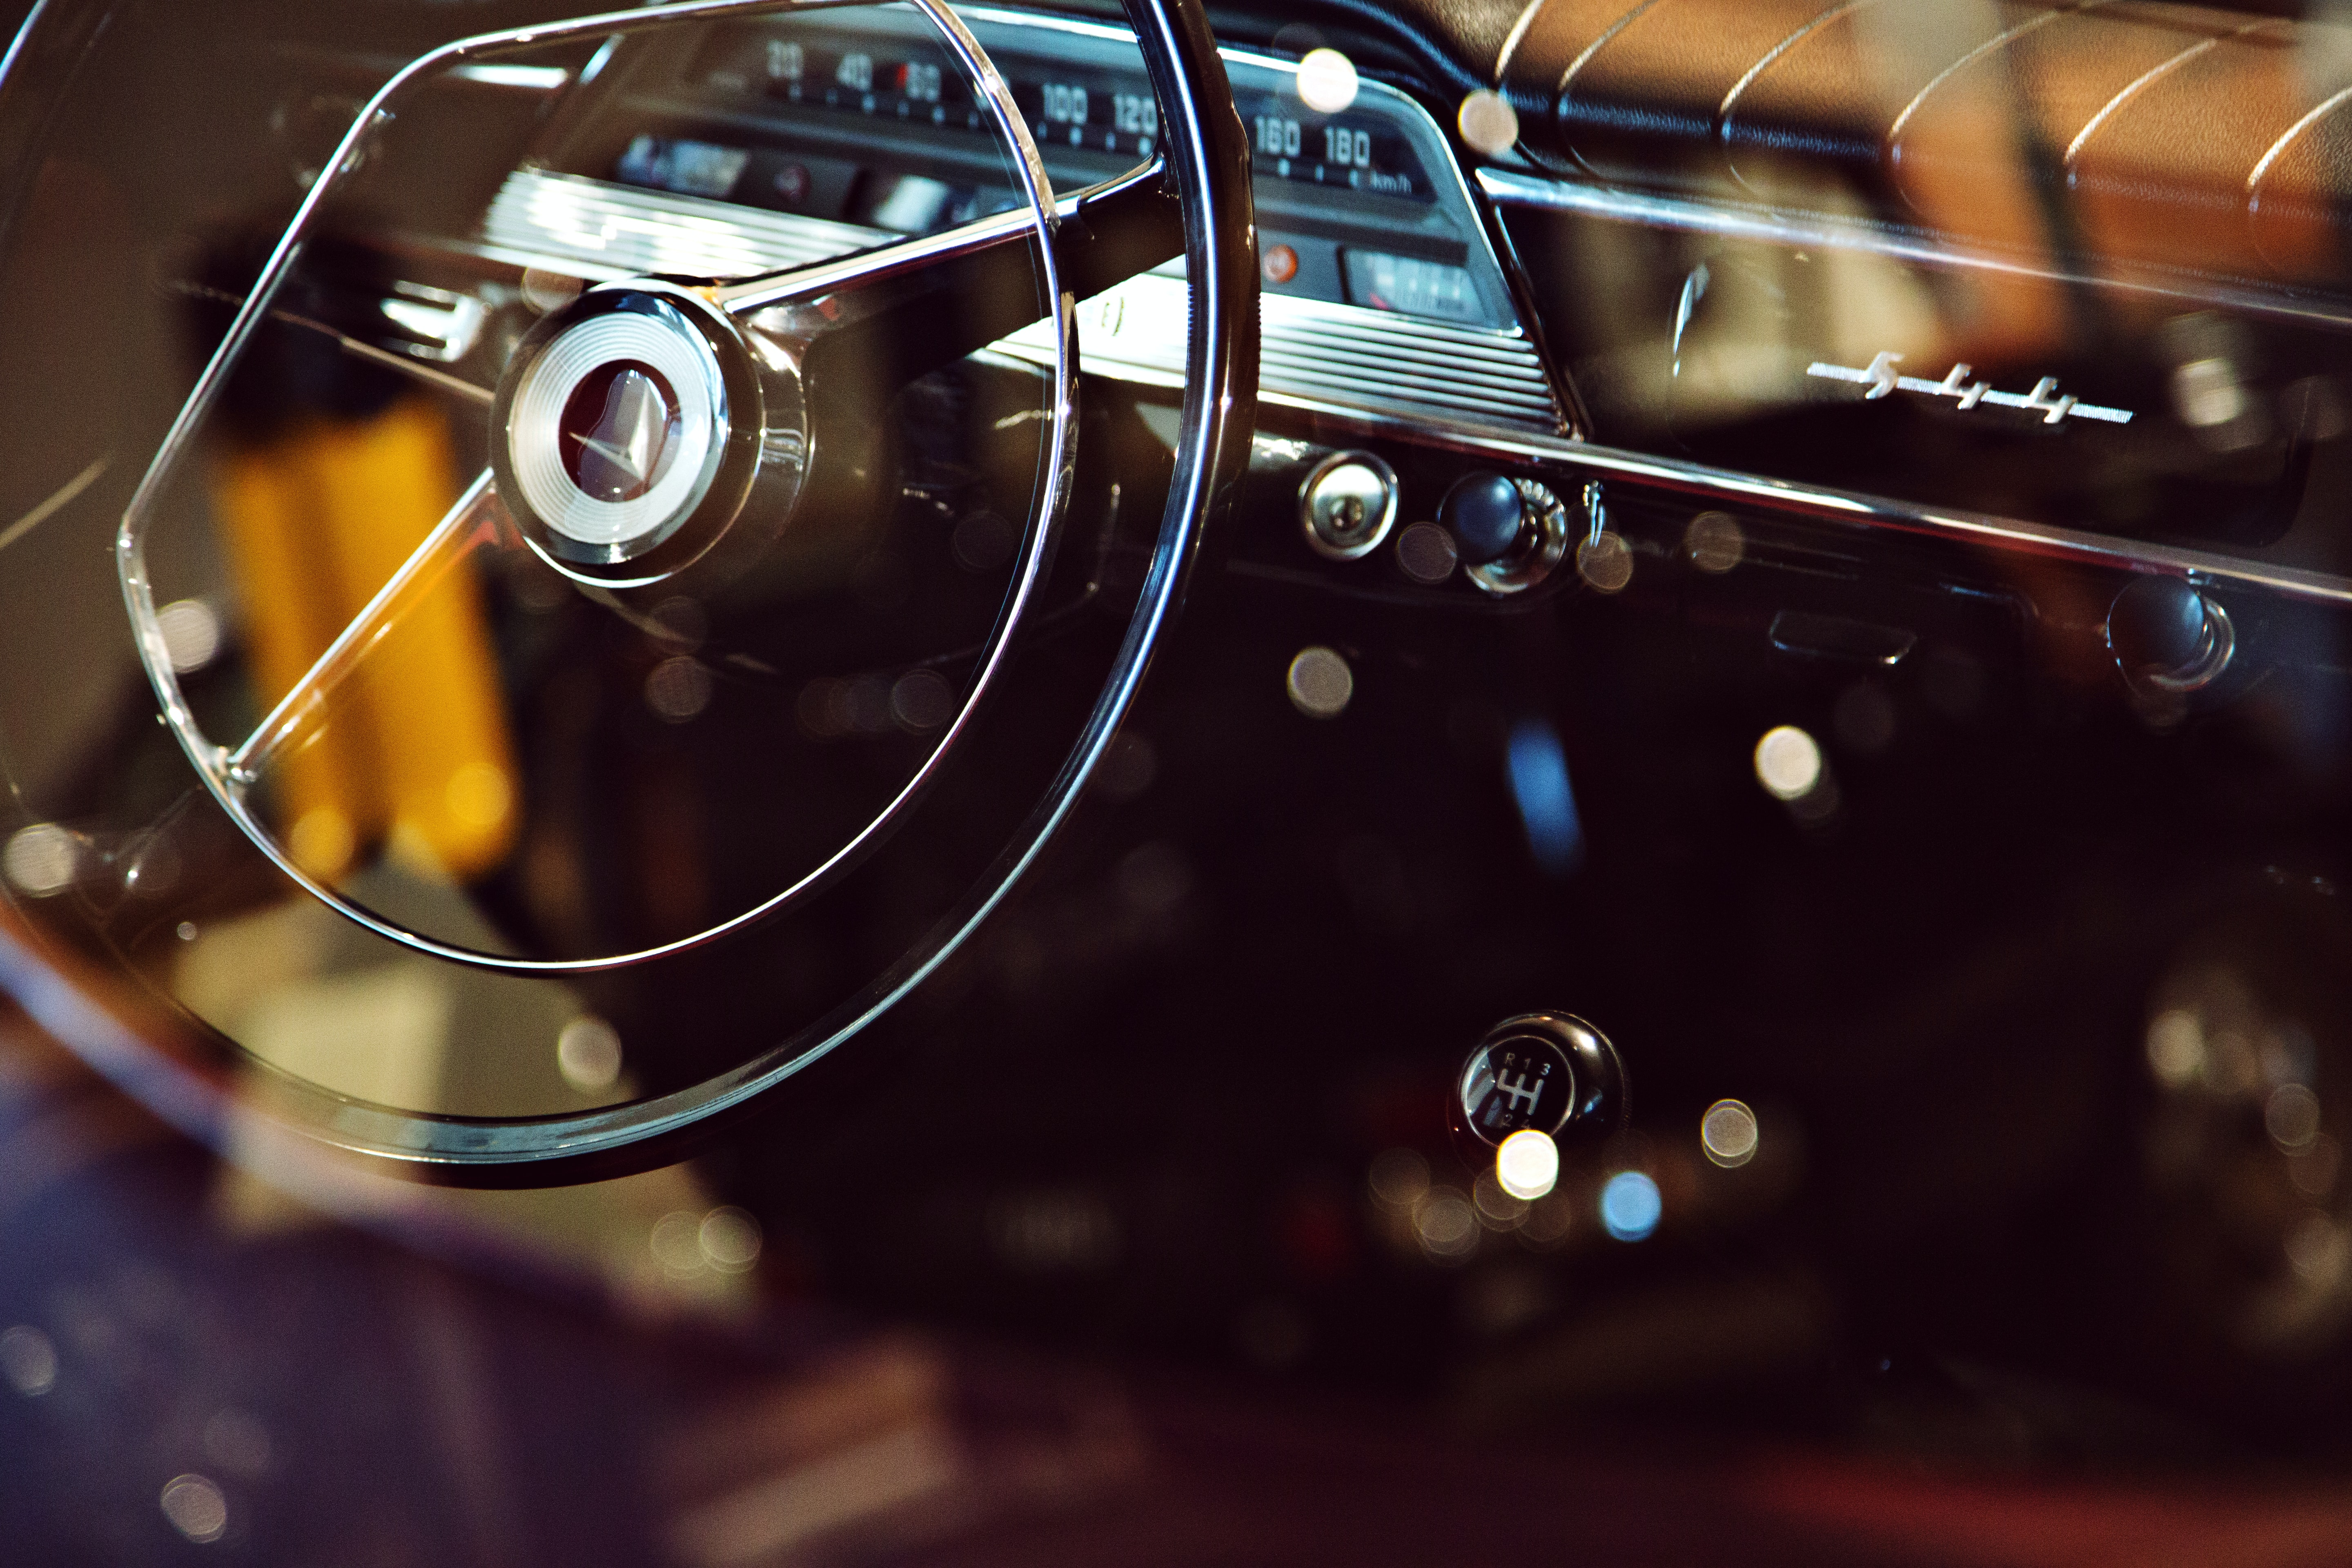 bokeh photography of vehicle steering wheel and gear shift lever